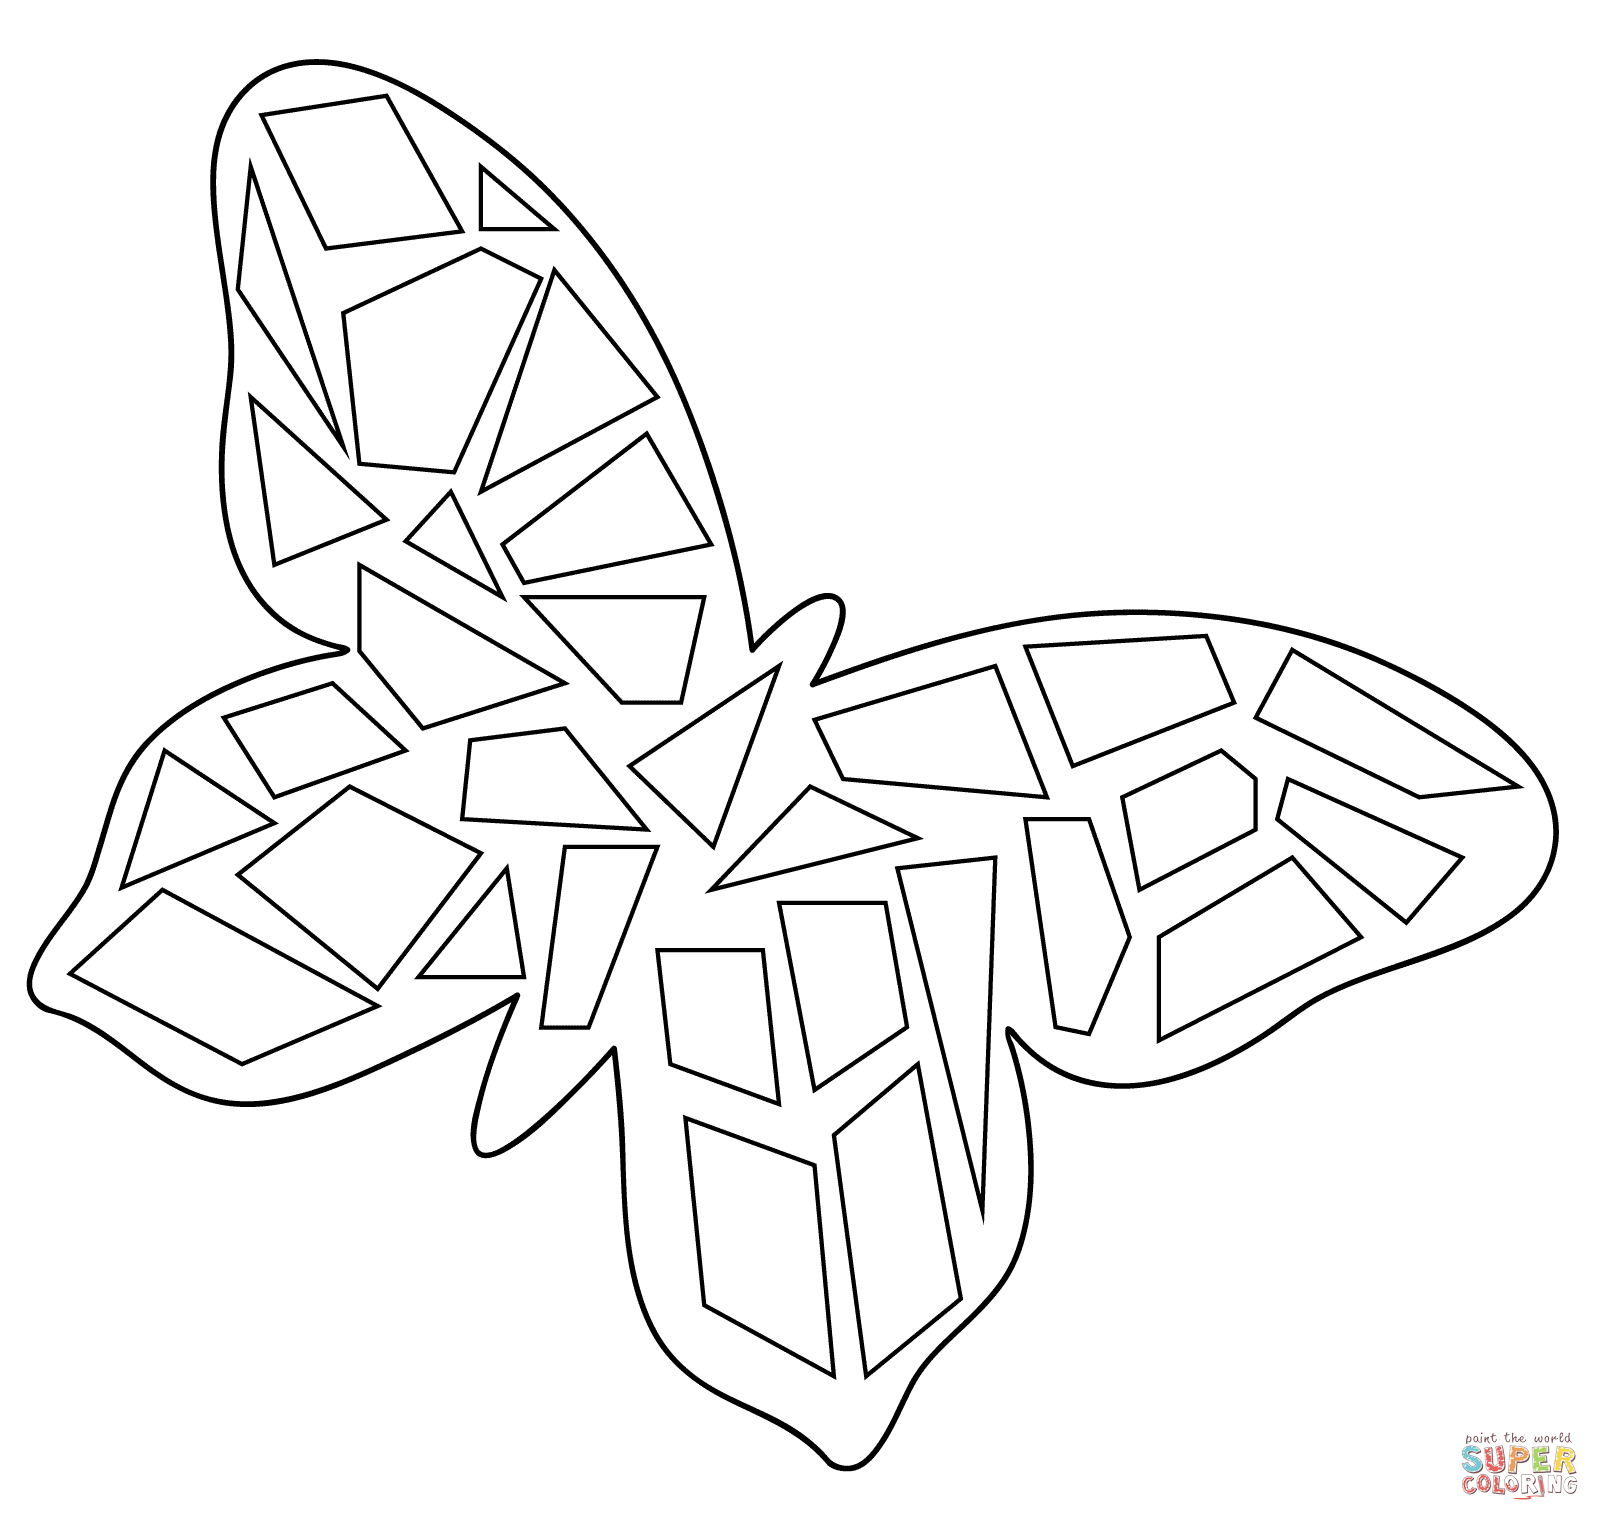 Butterfly mosaic coloring page